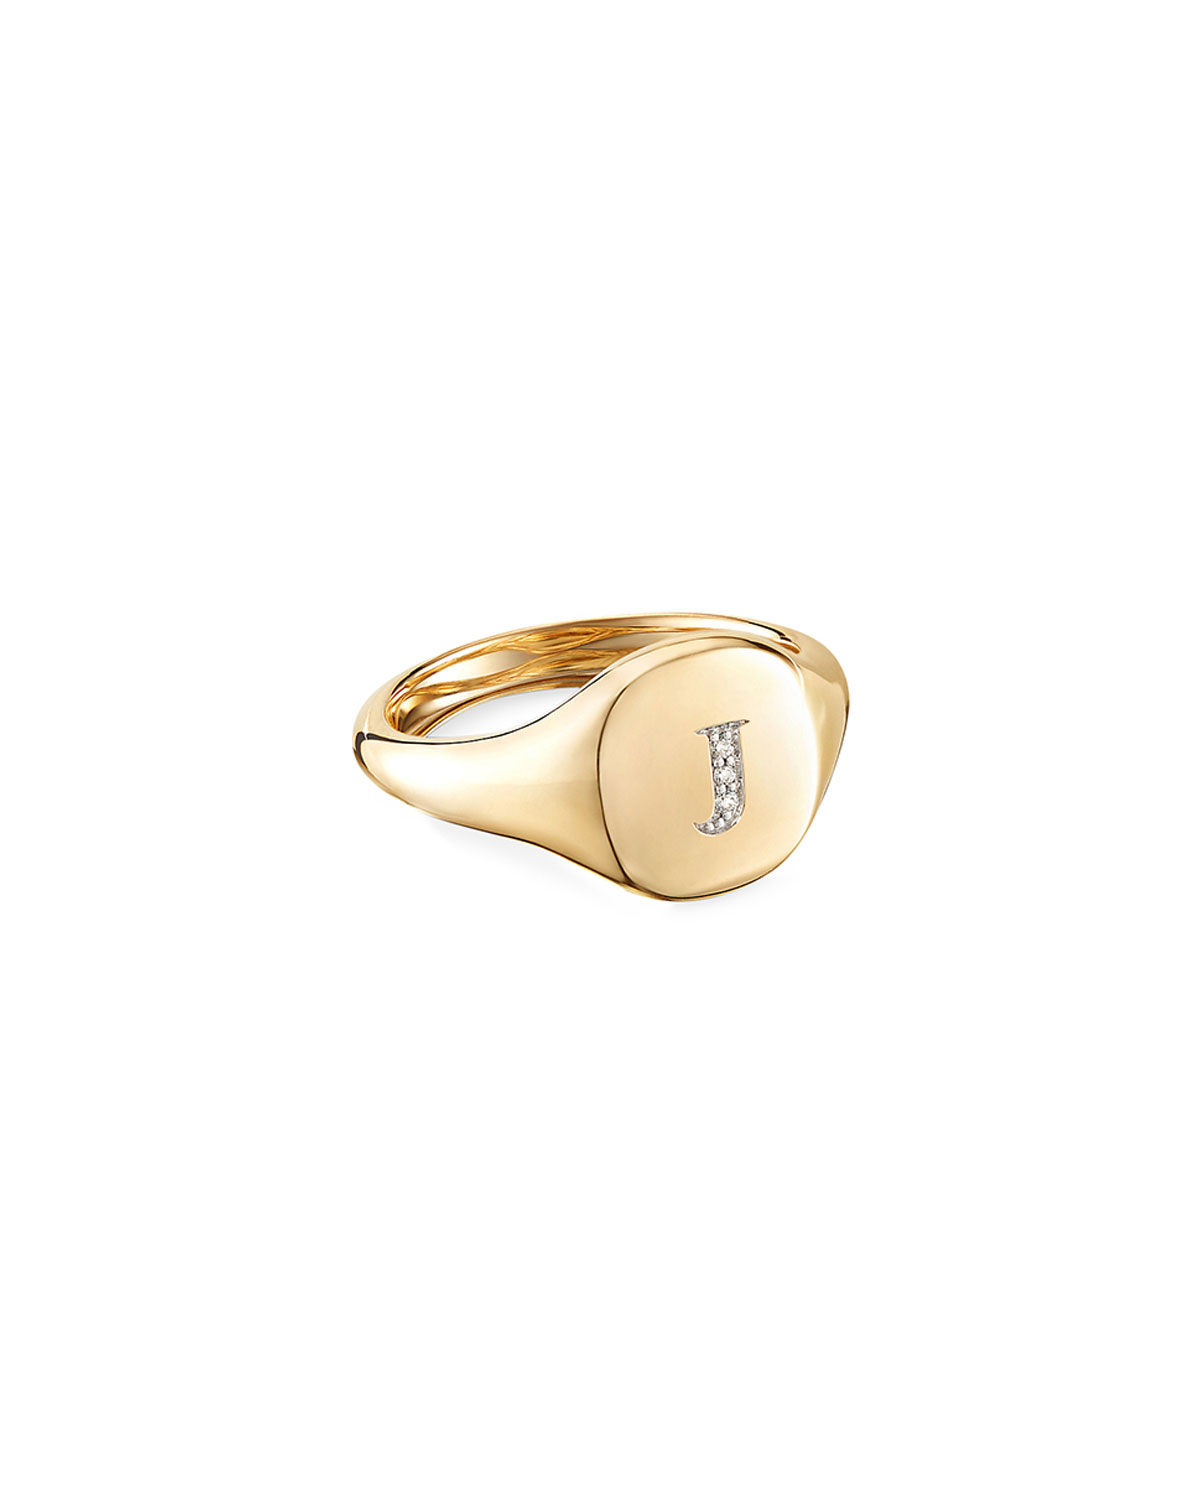 David Yurman Mini DY Initial J Pinky Ring in 18K Yellow Gold with Diamonds, Size 2.5